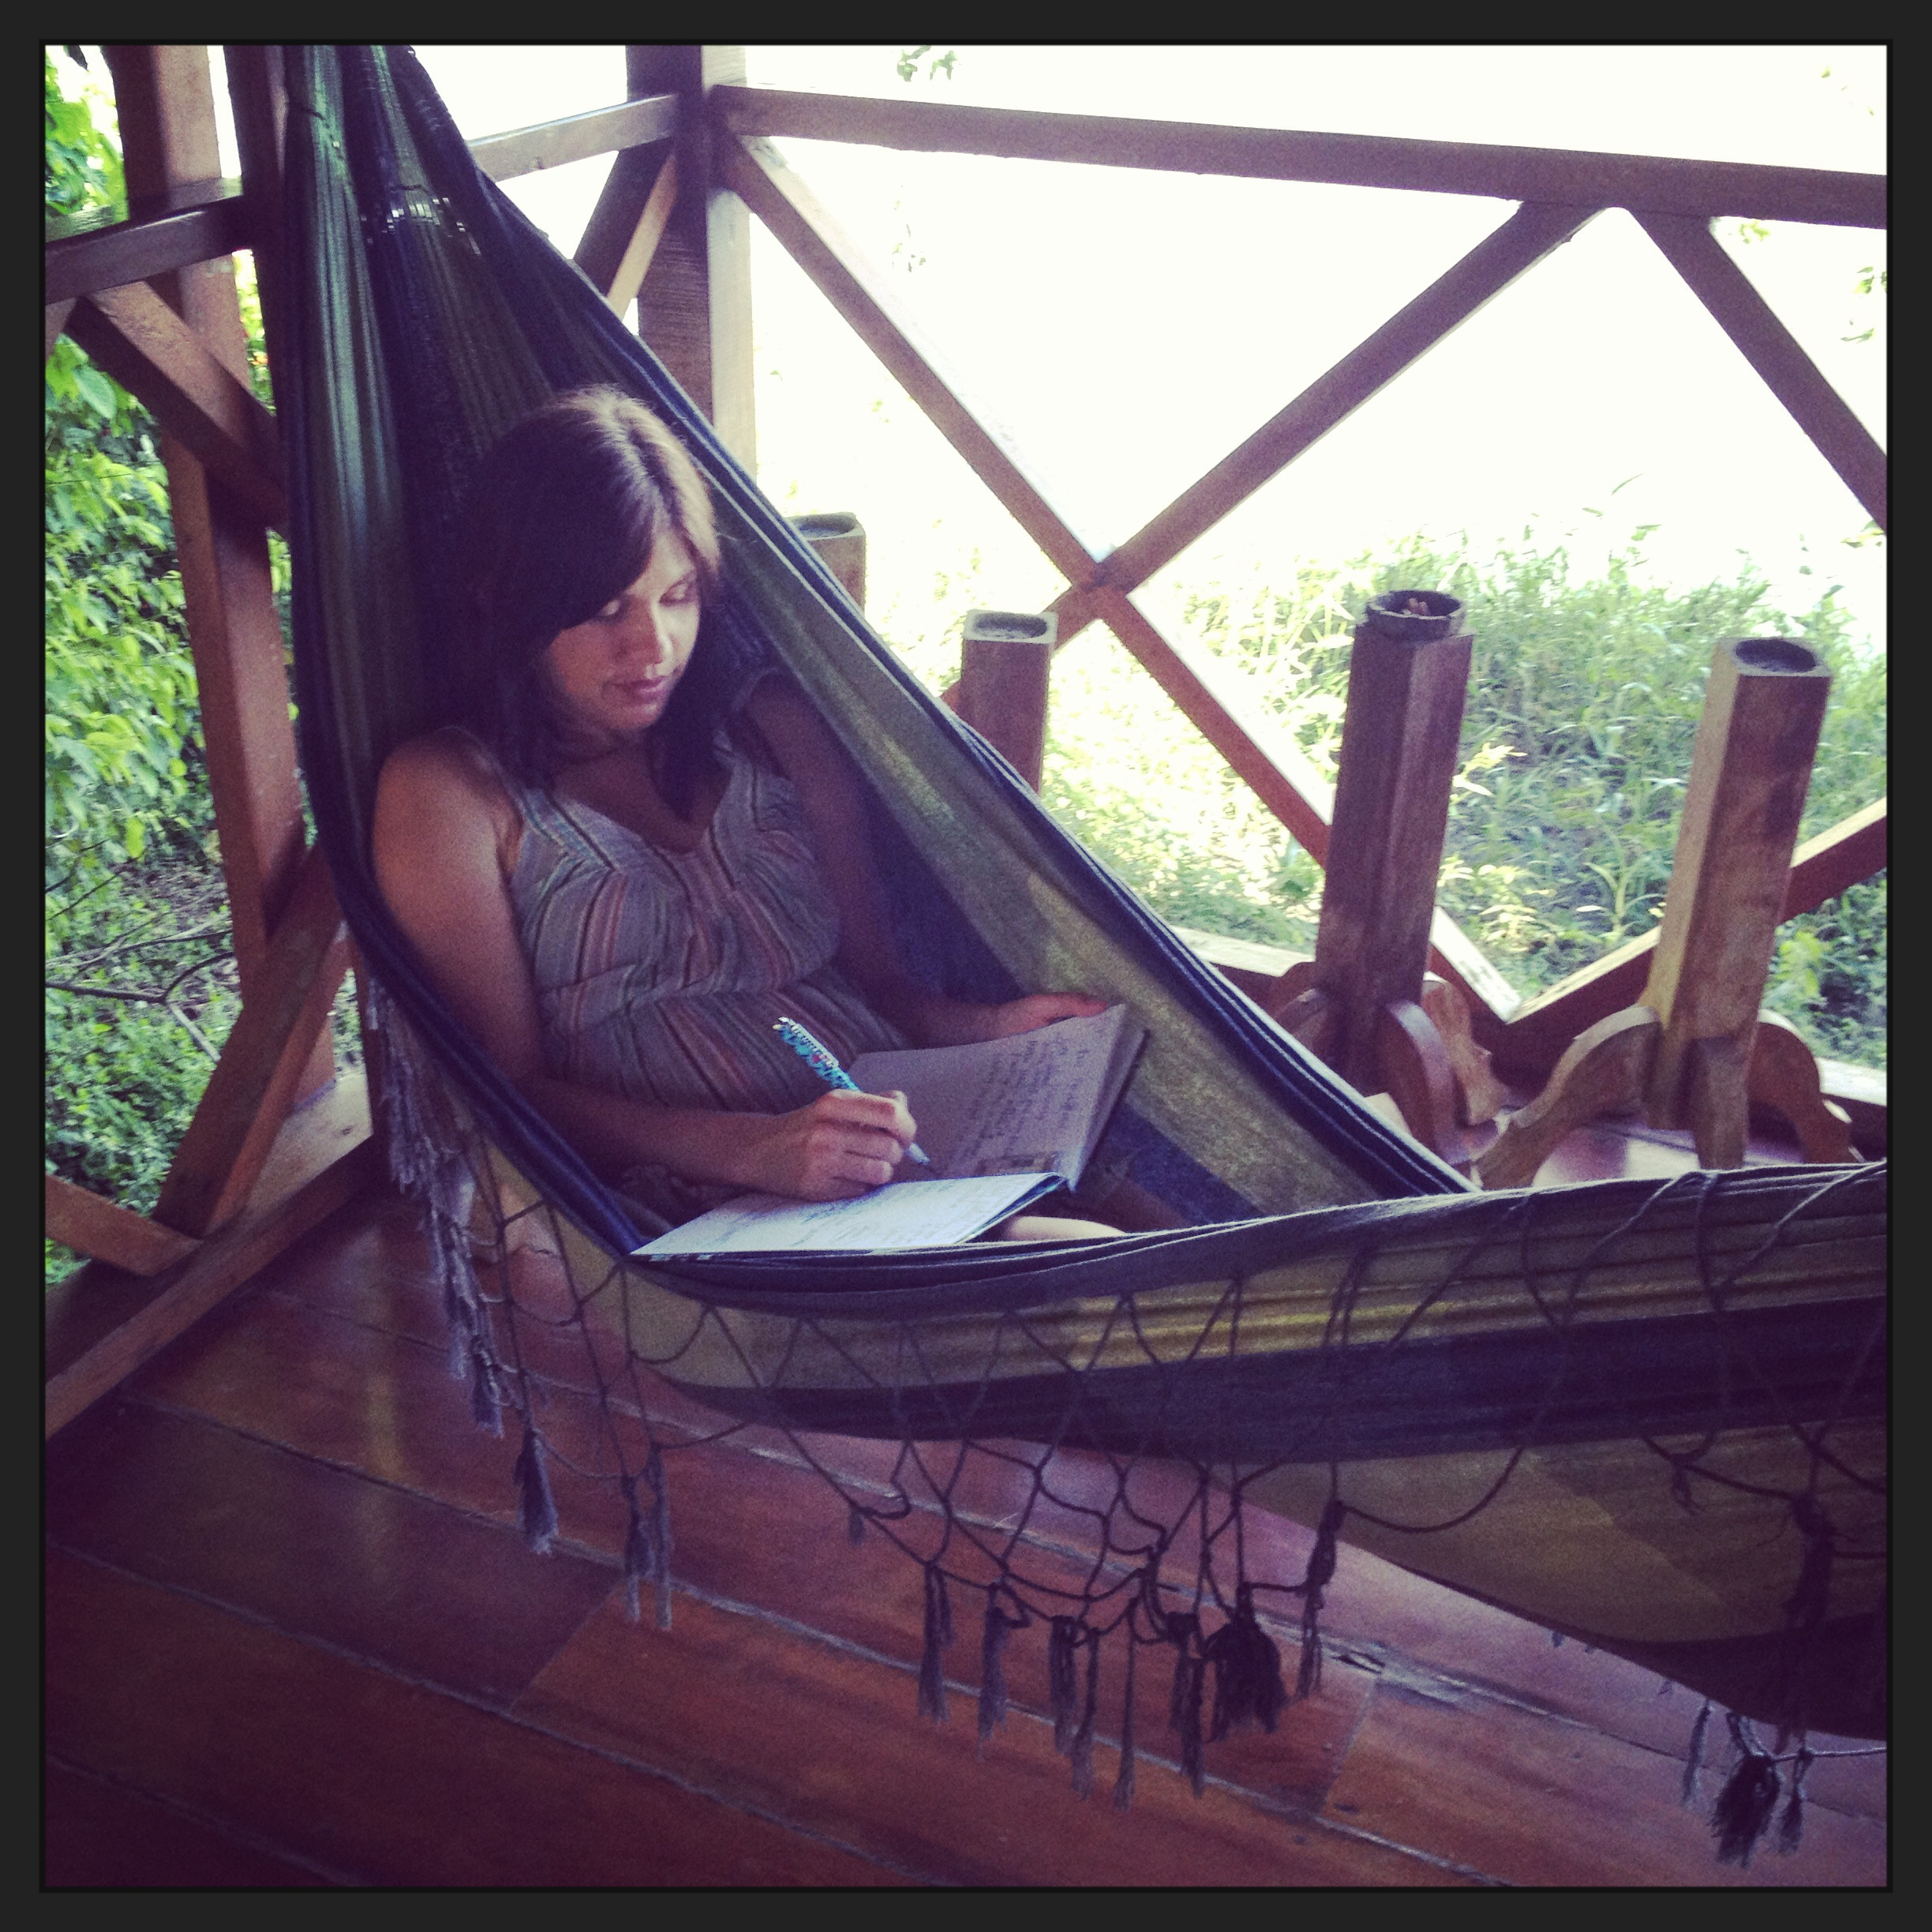 Rochelle integrating her experiences while writing in her journal in Peru.